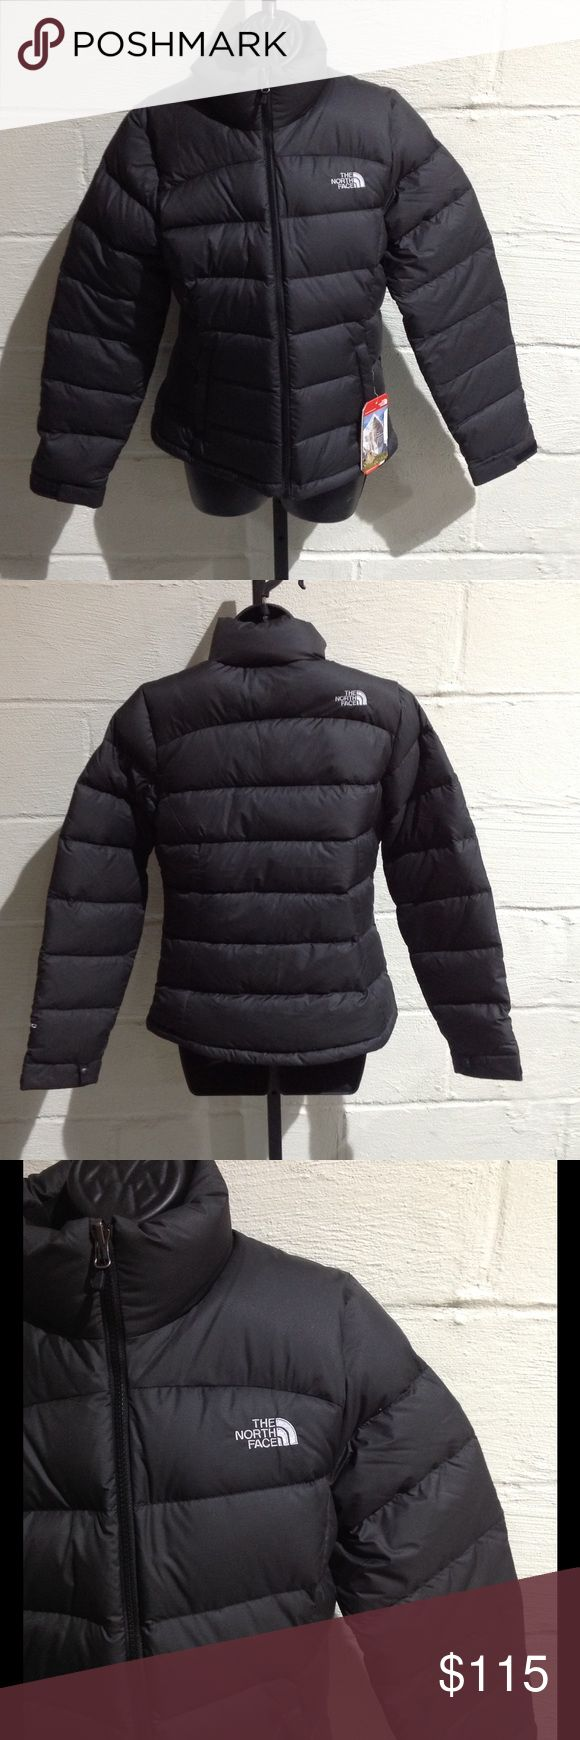 The North Face Women's Nuptse 2 Jacket This classic jacket provides ultimate warmth! Goose down, insulated and durable water repellent! (PM-W0298) North Face Jackets & Coats